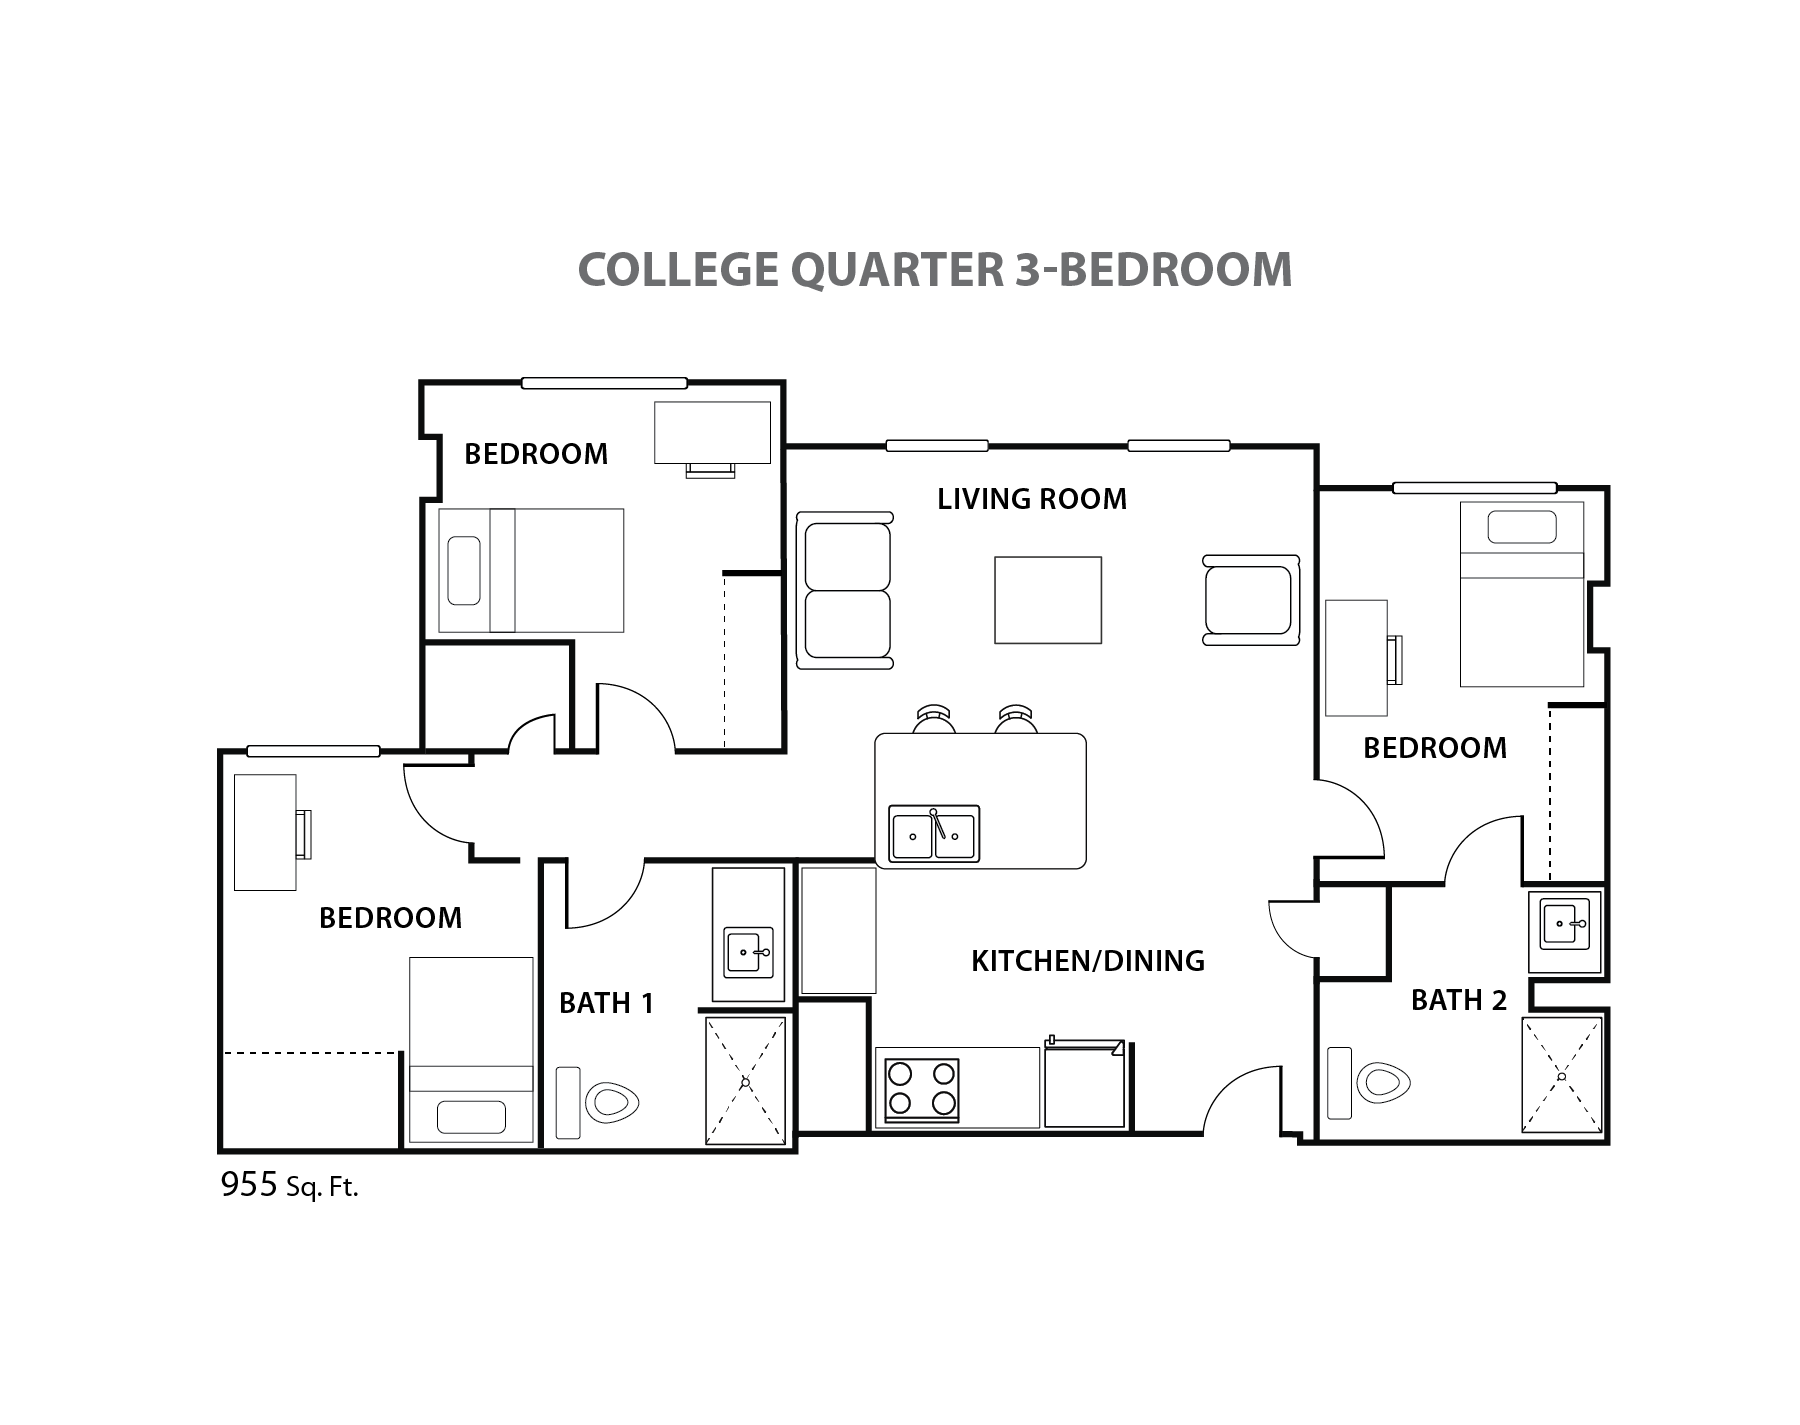 Cq three bedroom